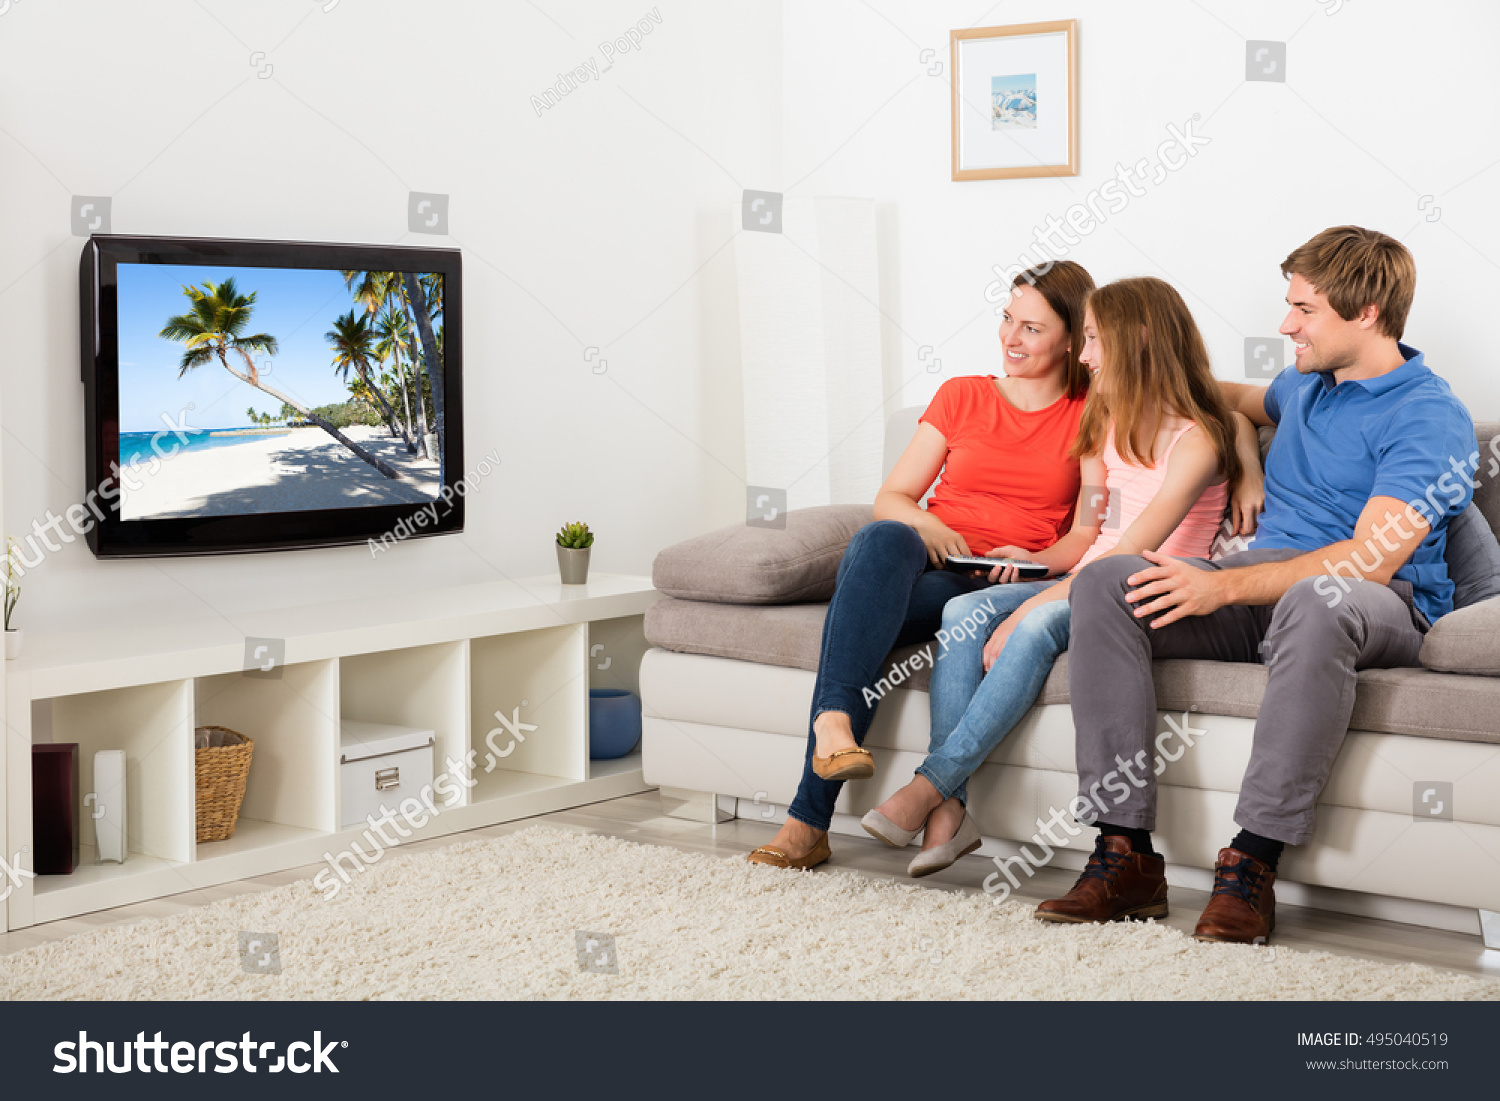 Tv In Living Room Family Watching Tv Living Room Stock Photo 495040519 Shutterstock